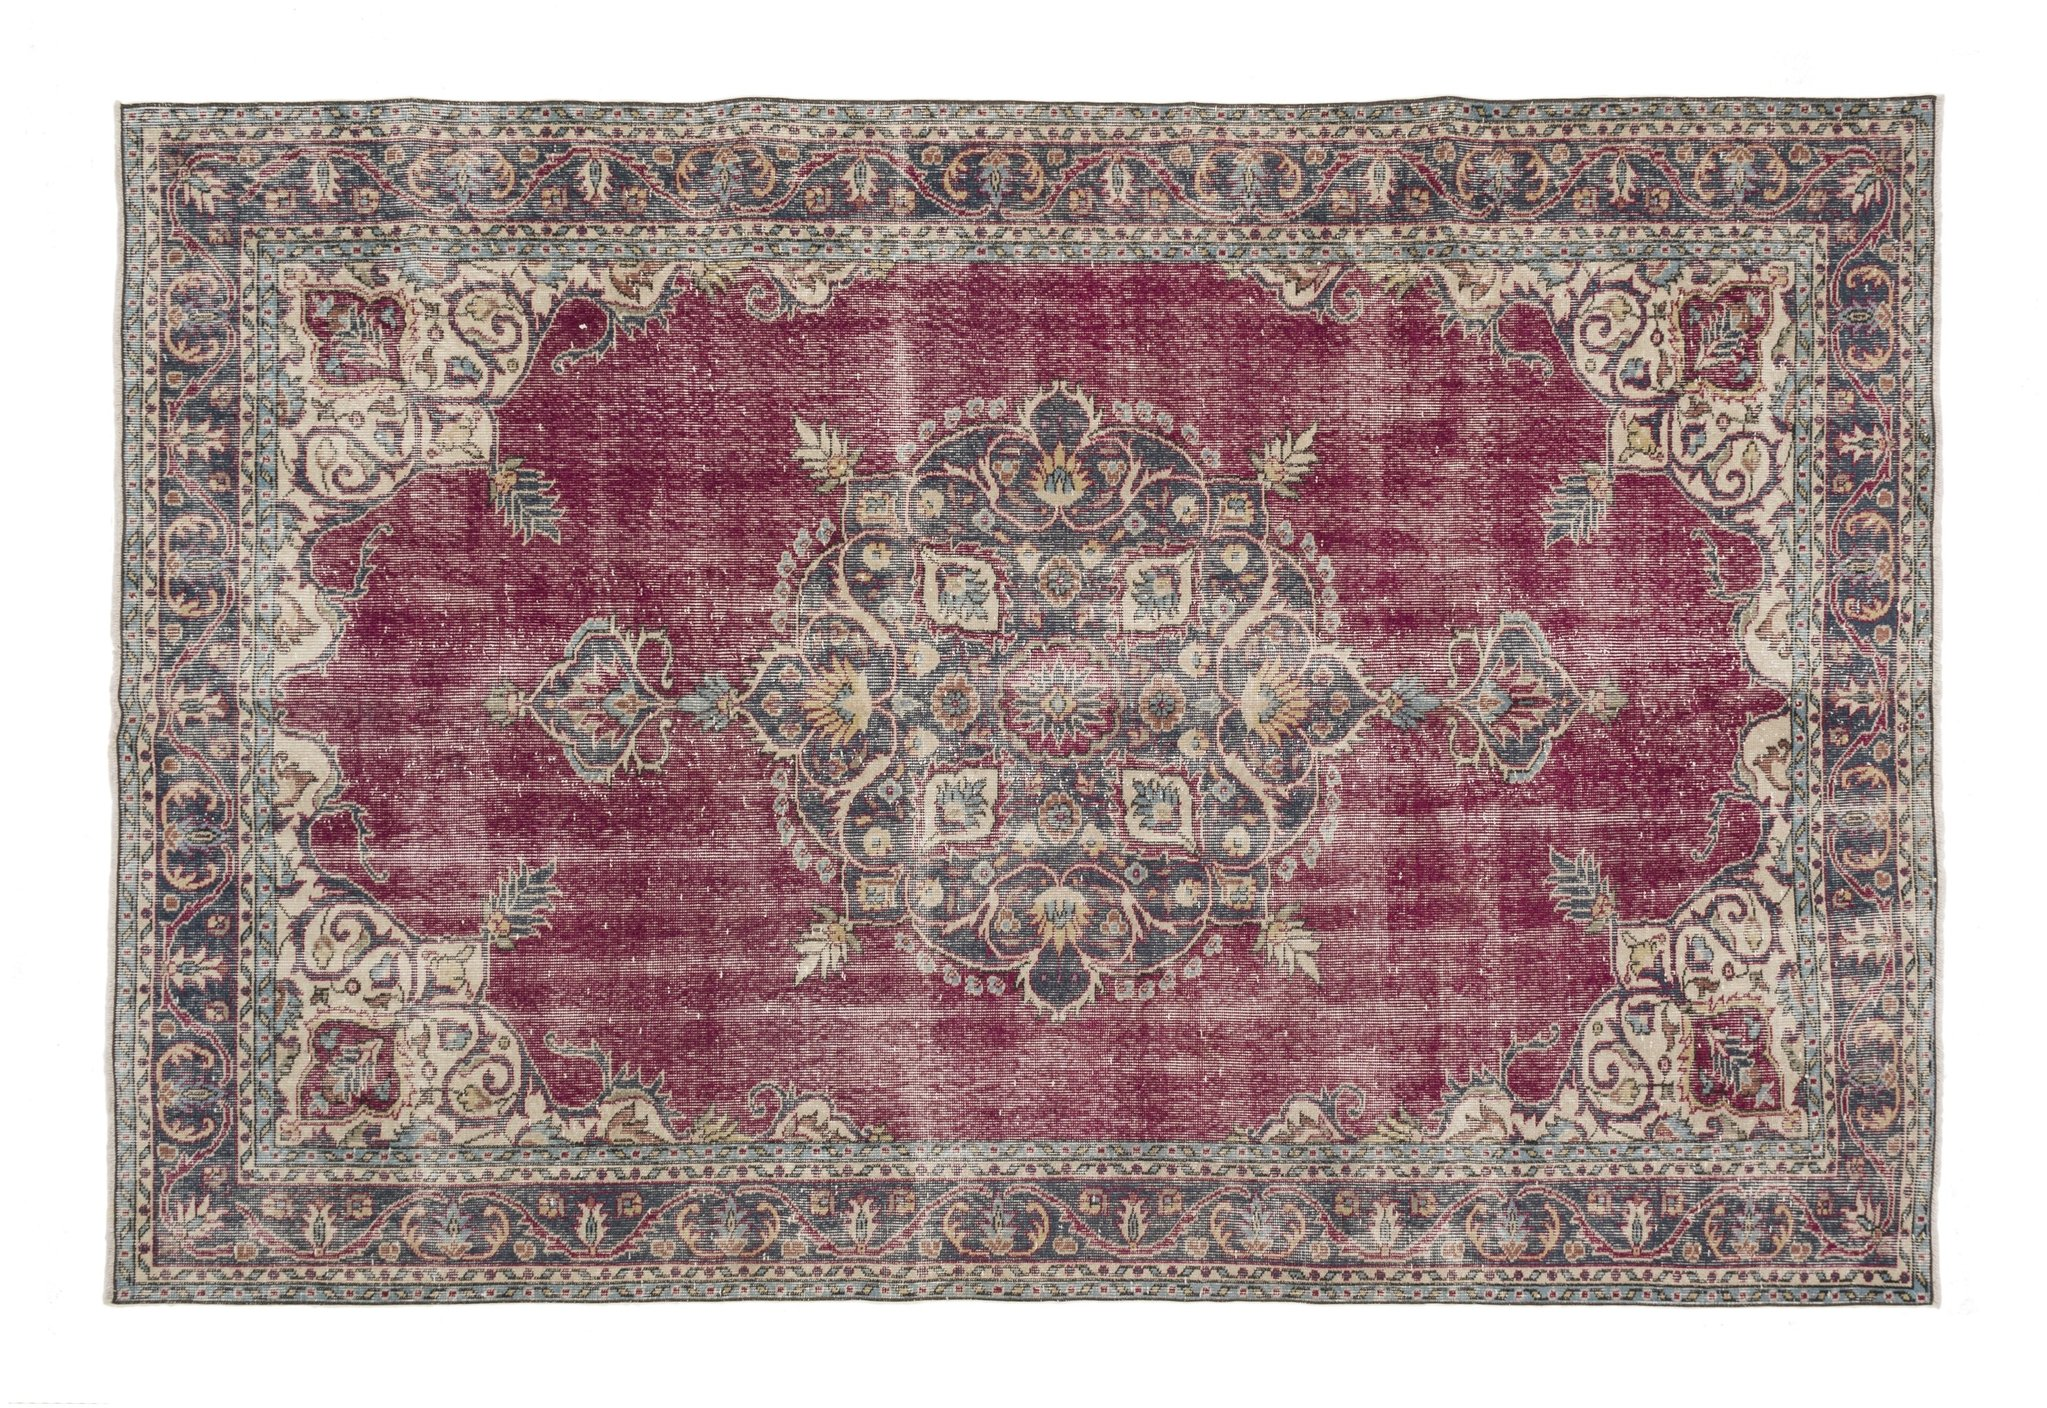 Martina With Images Wool Area Rugs Persian Motifs Vintage Rugs